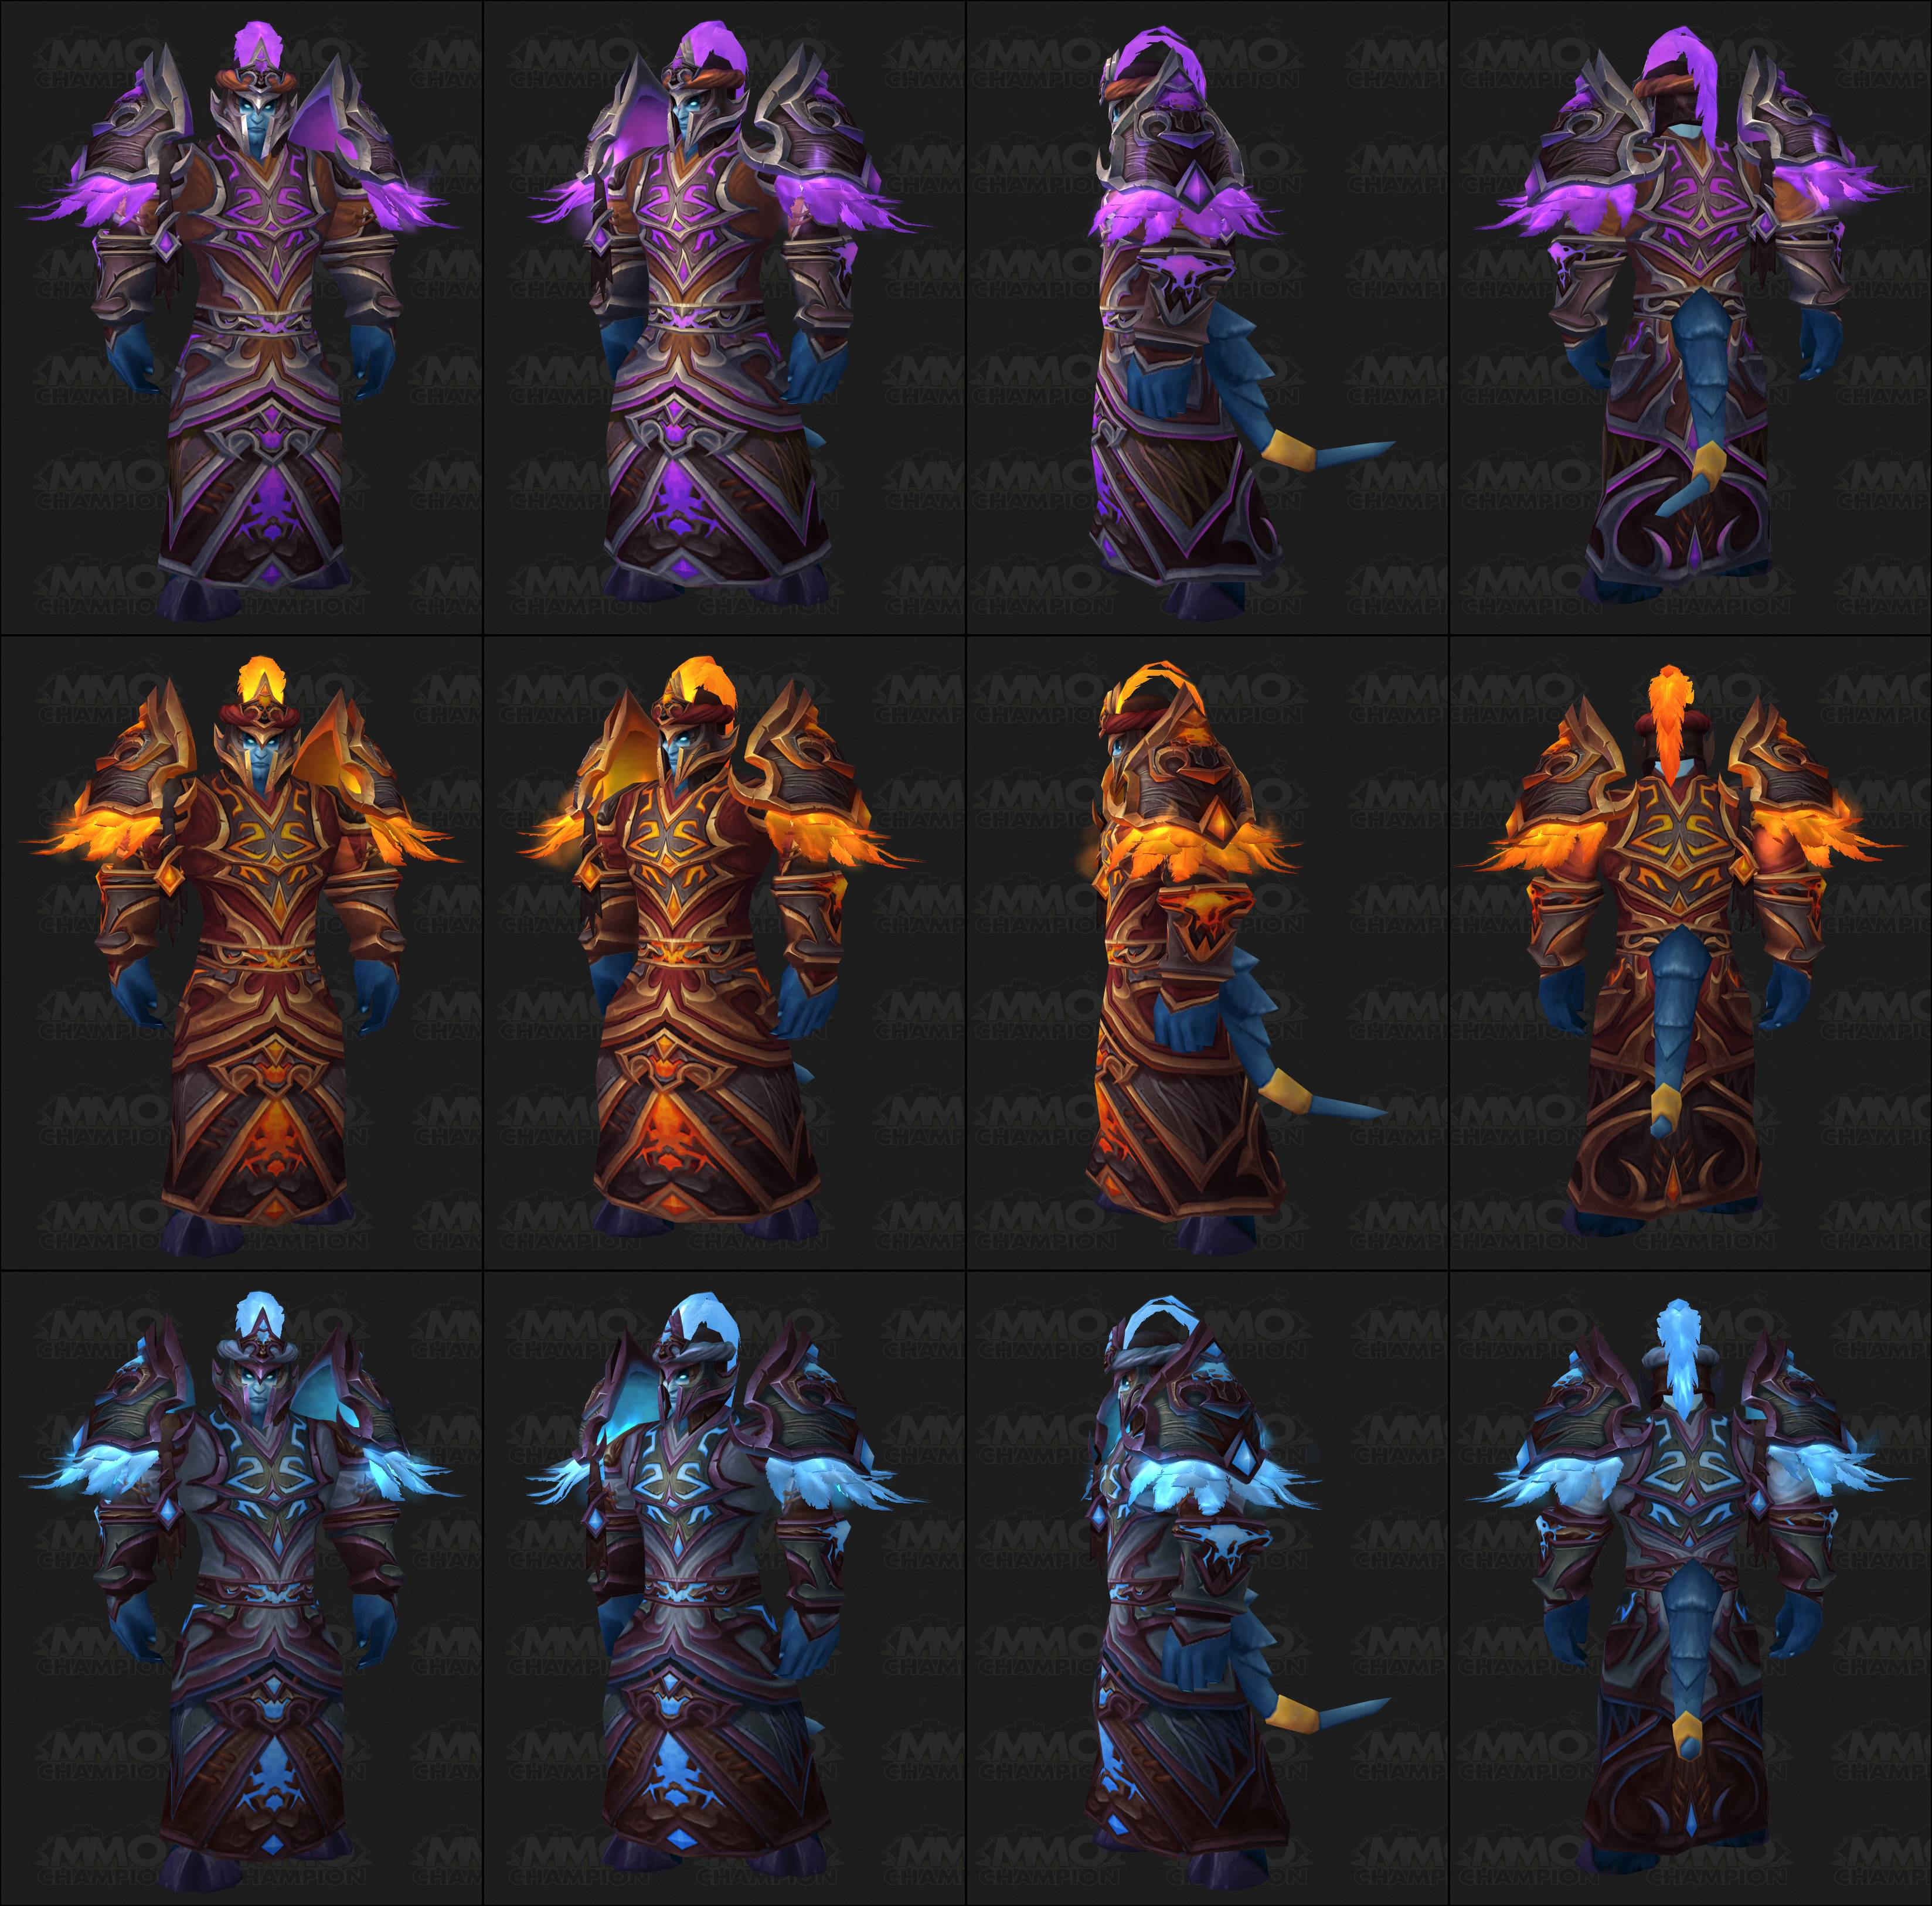 WoW draenei crystal porn pictures